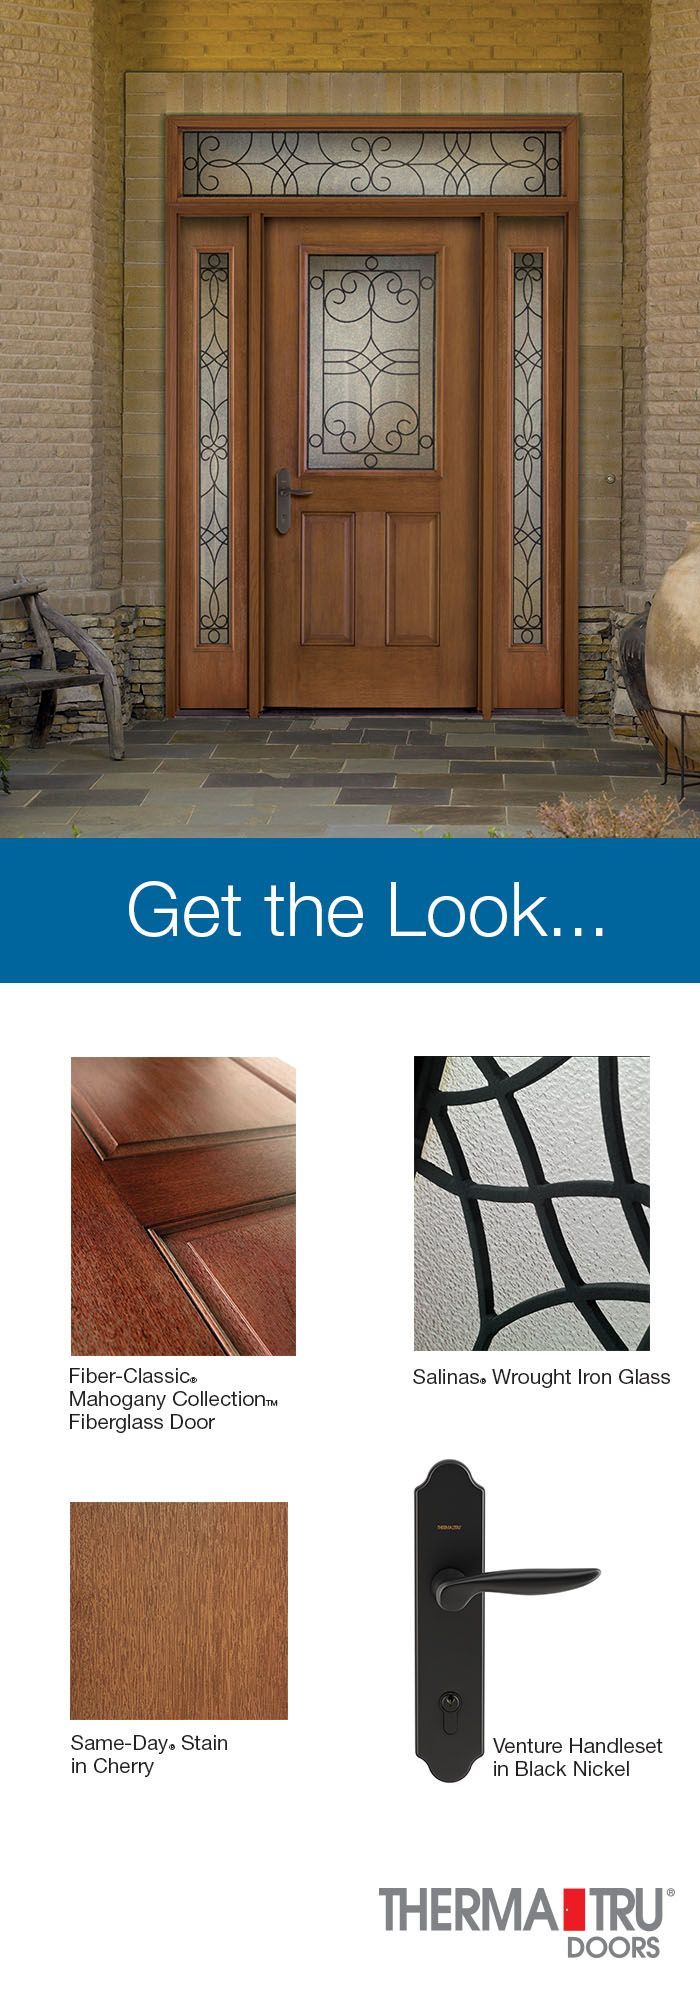 Therma-Tru Fiber-Classic Mahogany Collection fiberglass door with Same-Day Stain in Cherry and Salinas Wrought Iron decorative glass.